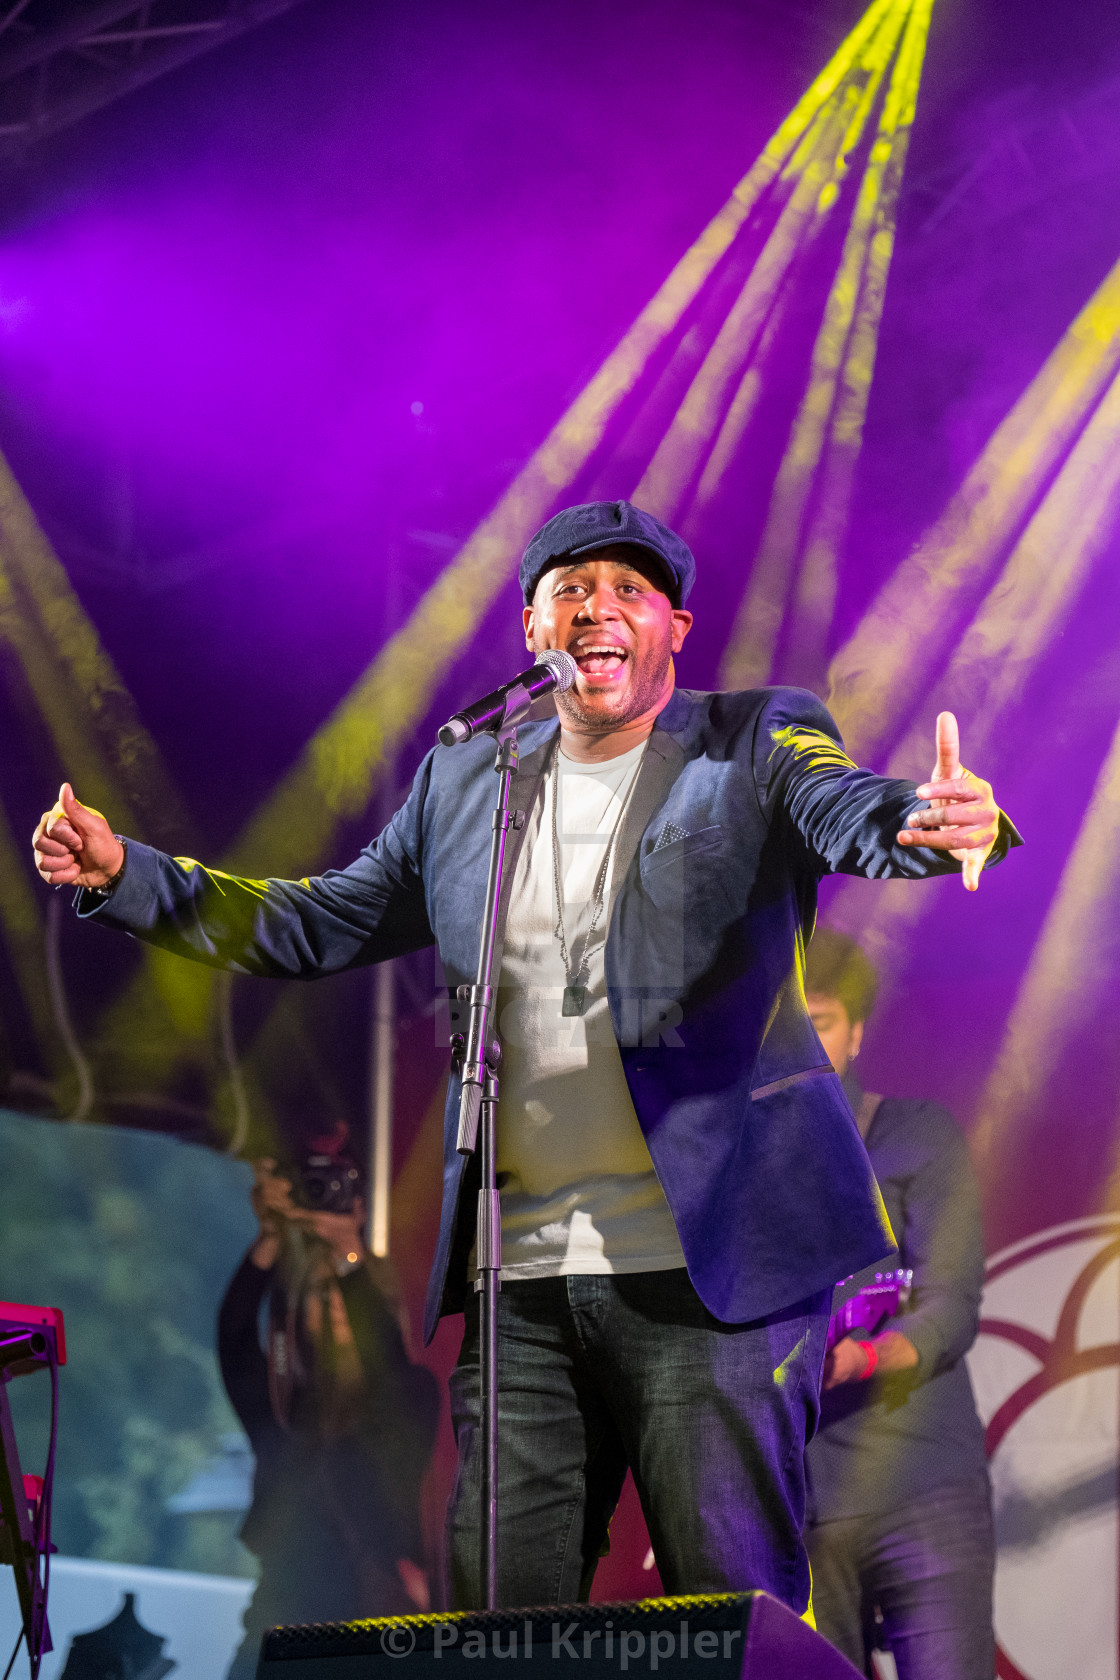 """Tony Momrelle at the Blues'n Jazz Rallye 2018 in Luxembourg."" stock image"